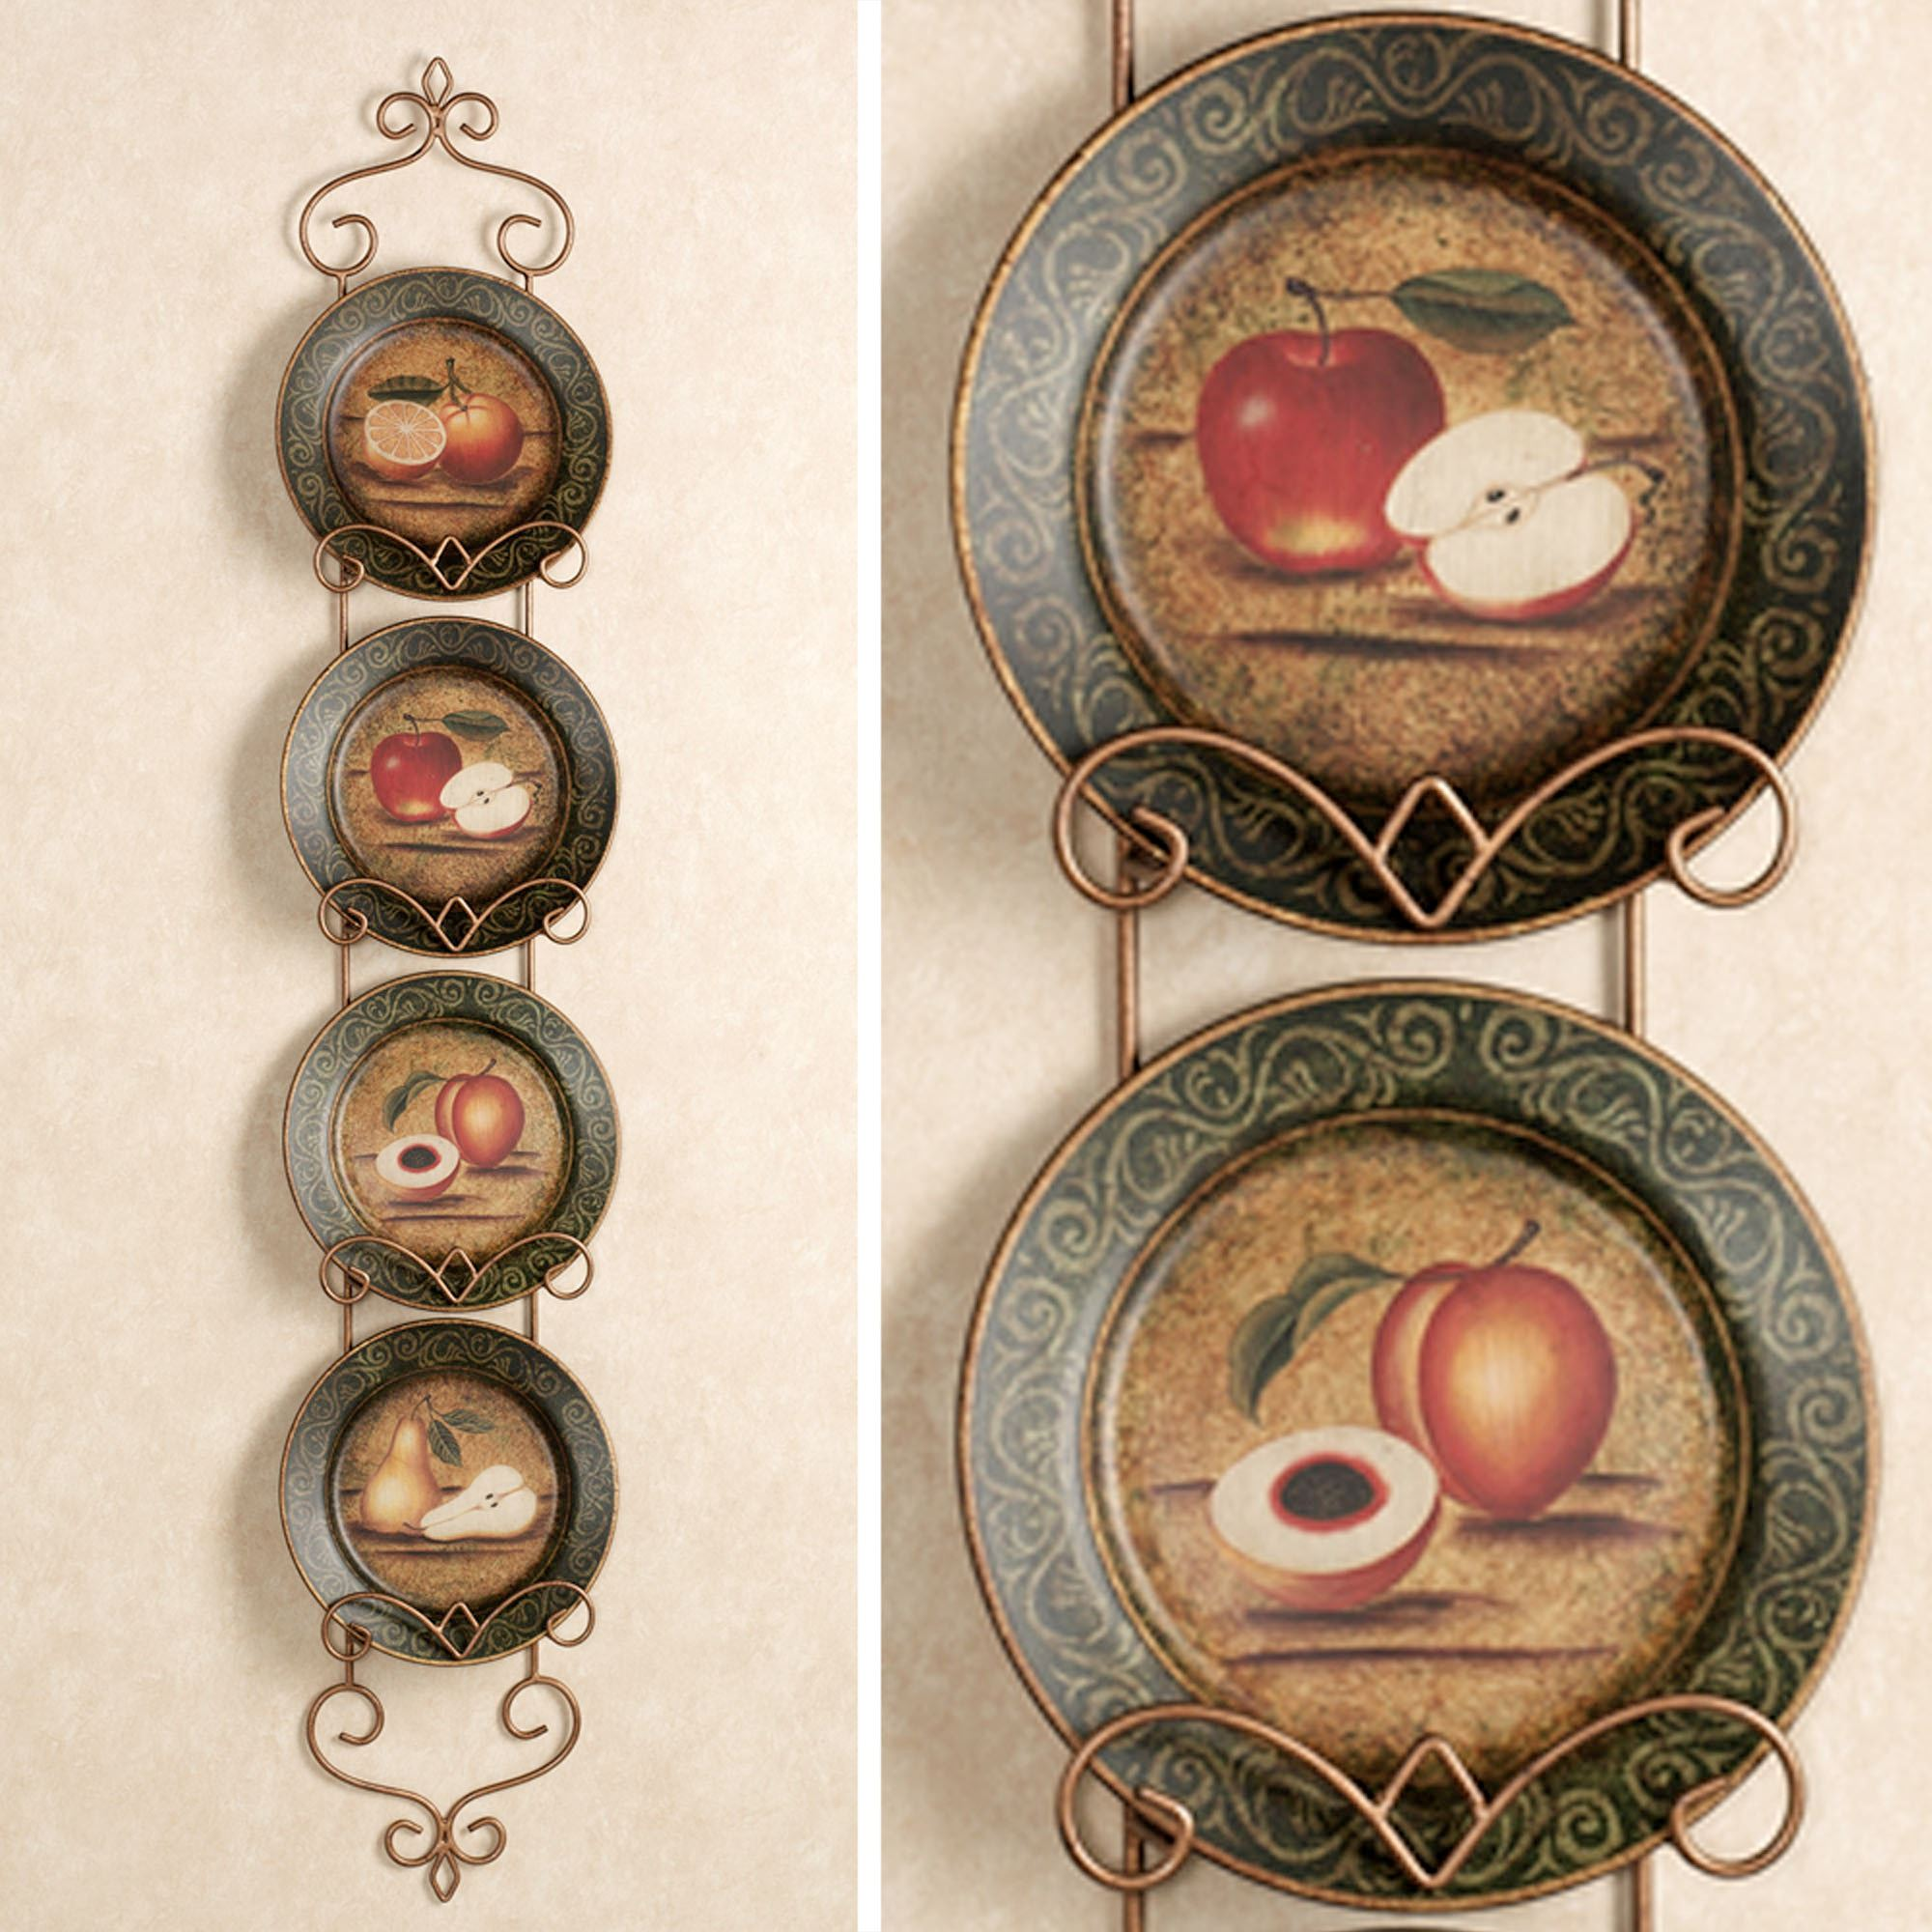 4 Inch Decorative Wall Plates Decorative Plates And Racks Touch Of Class : 4 inch decorative plates - pezcame.com